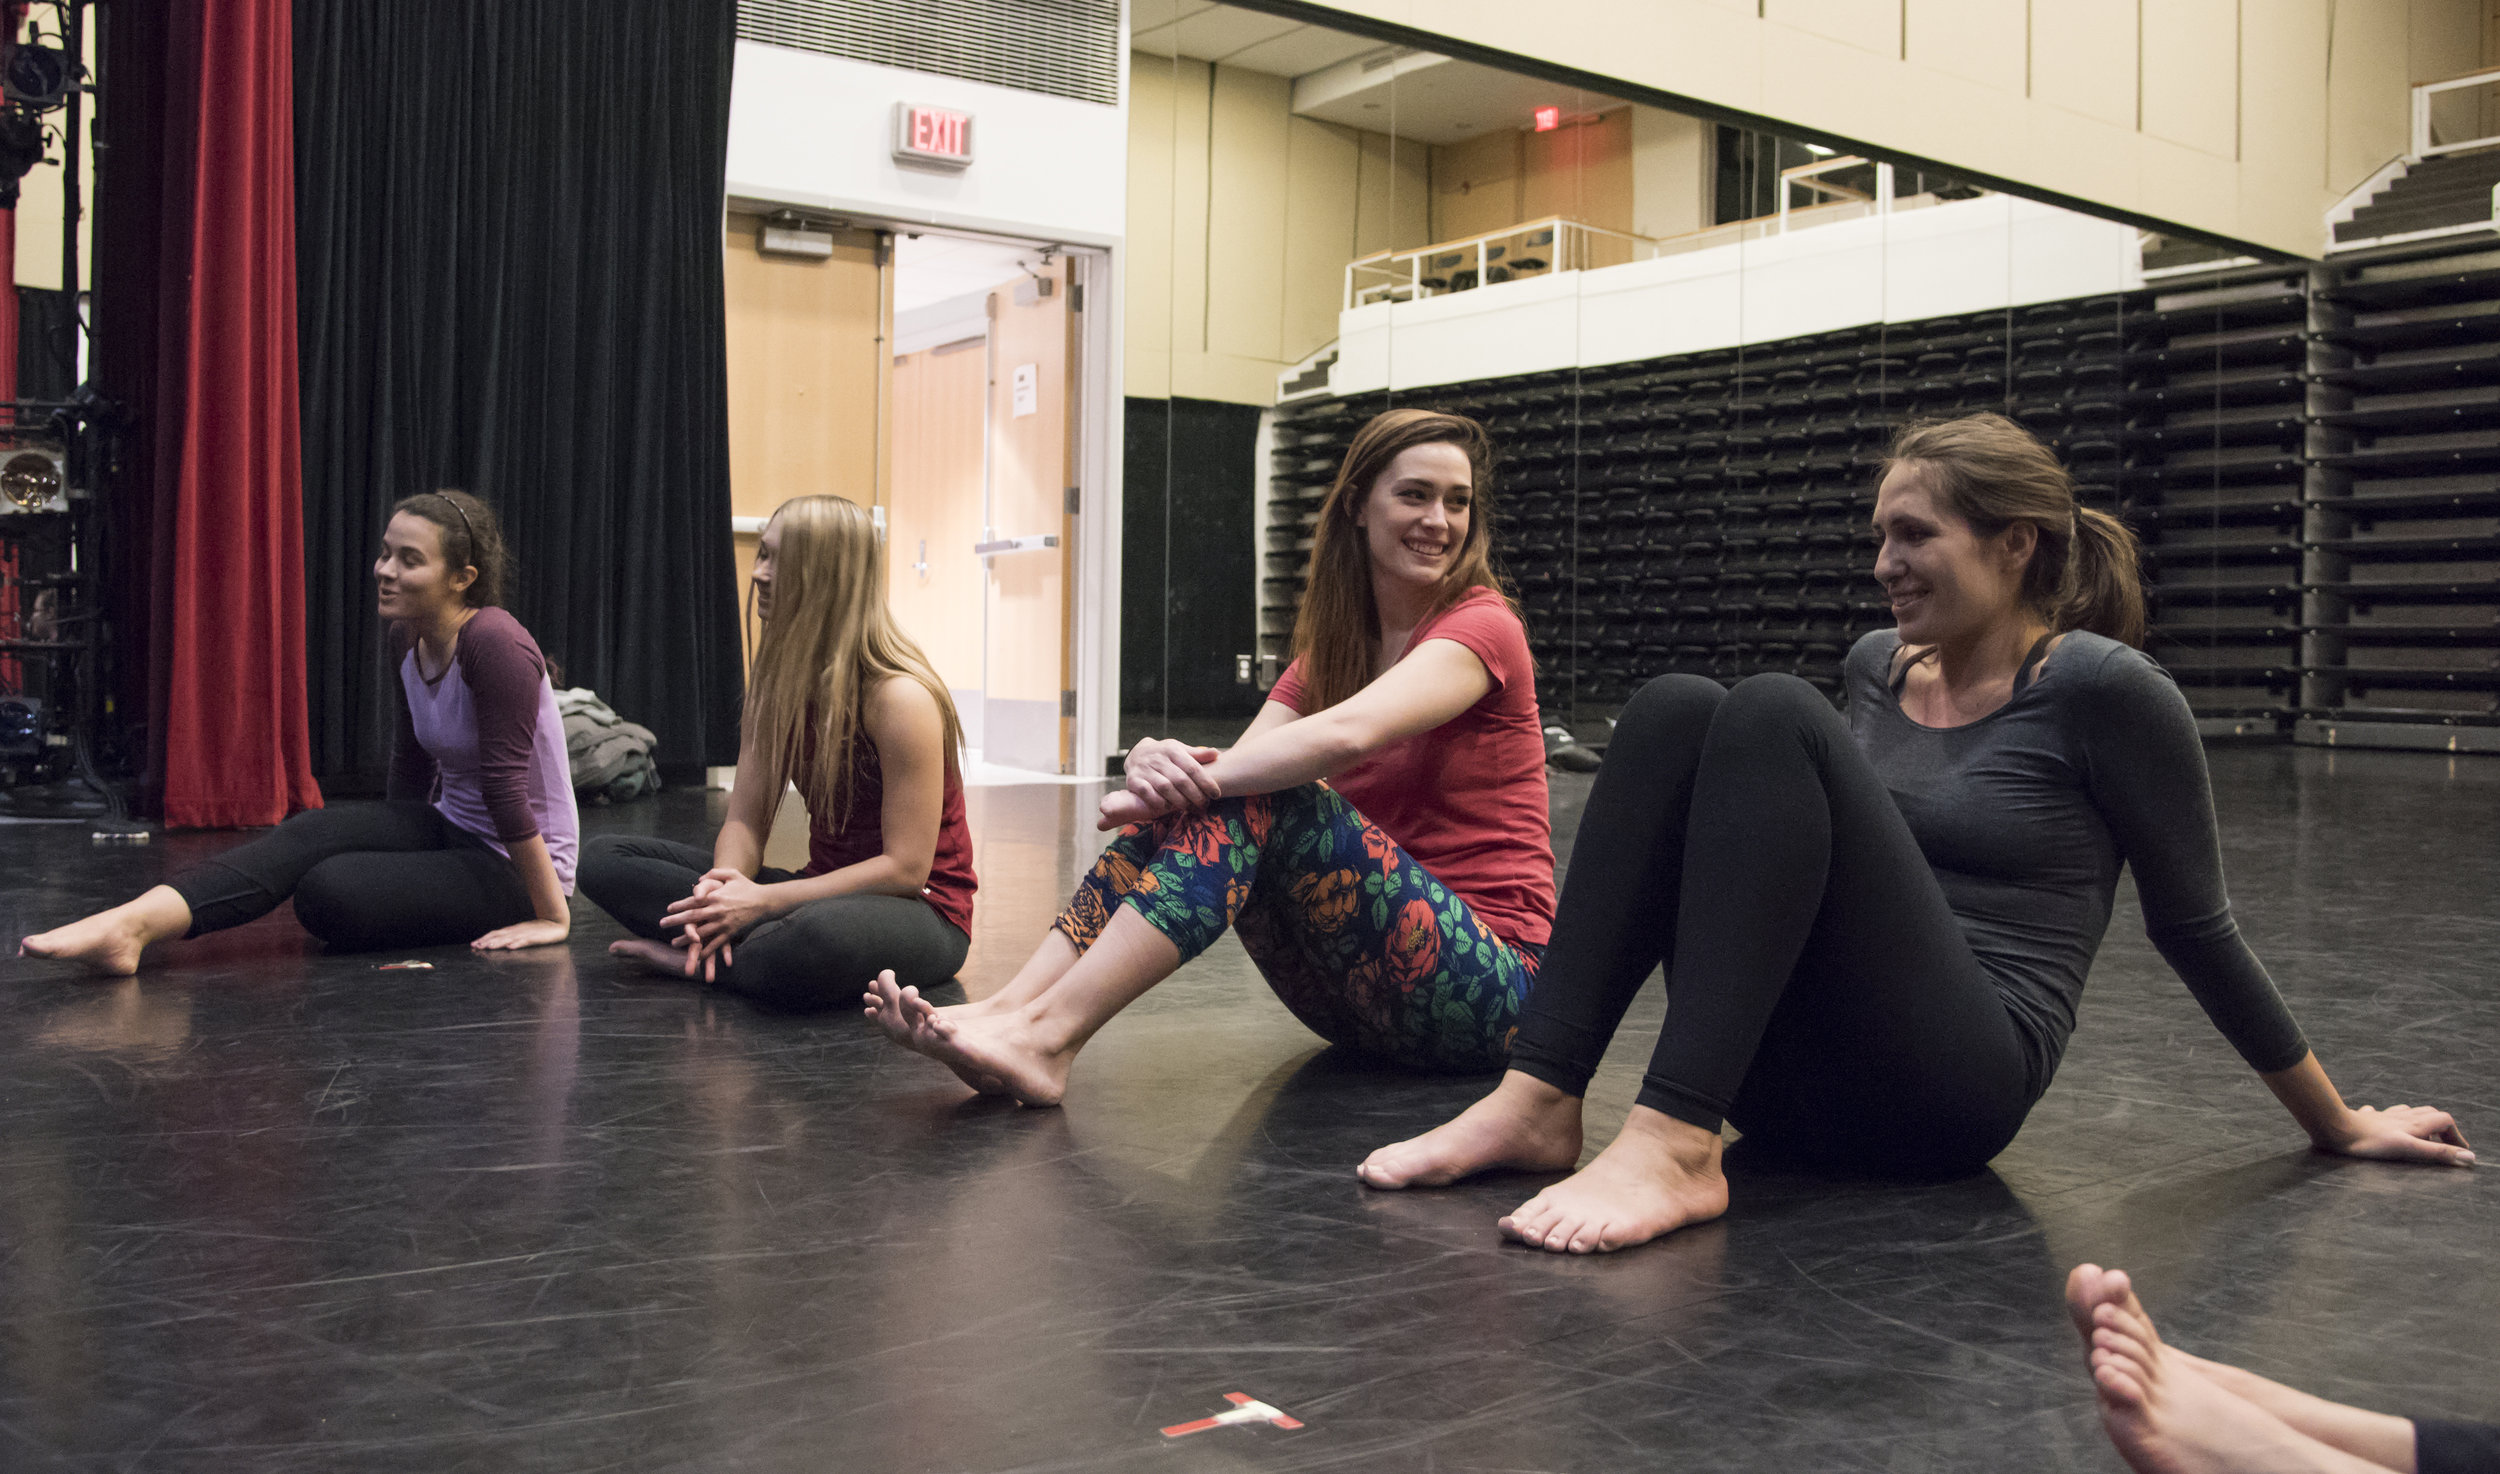 Sarah Tuberty talks to her friend before the start of the weekly aerial dance class she takes at Boston University's Fitness and Recreation Center.